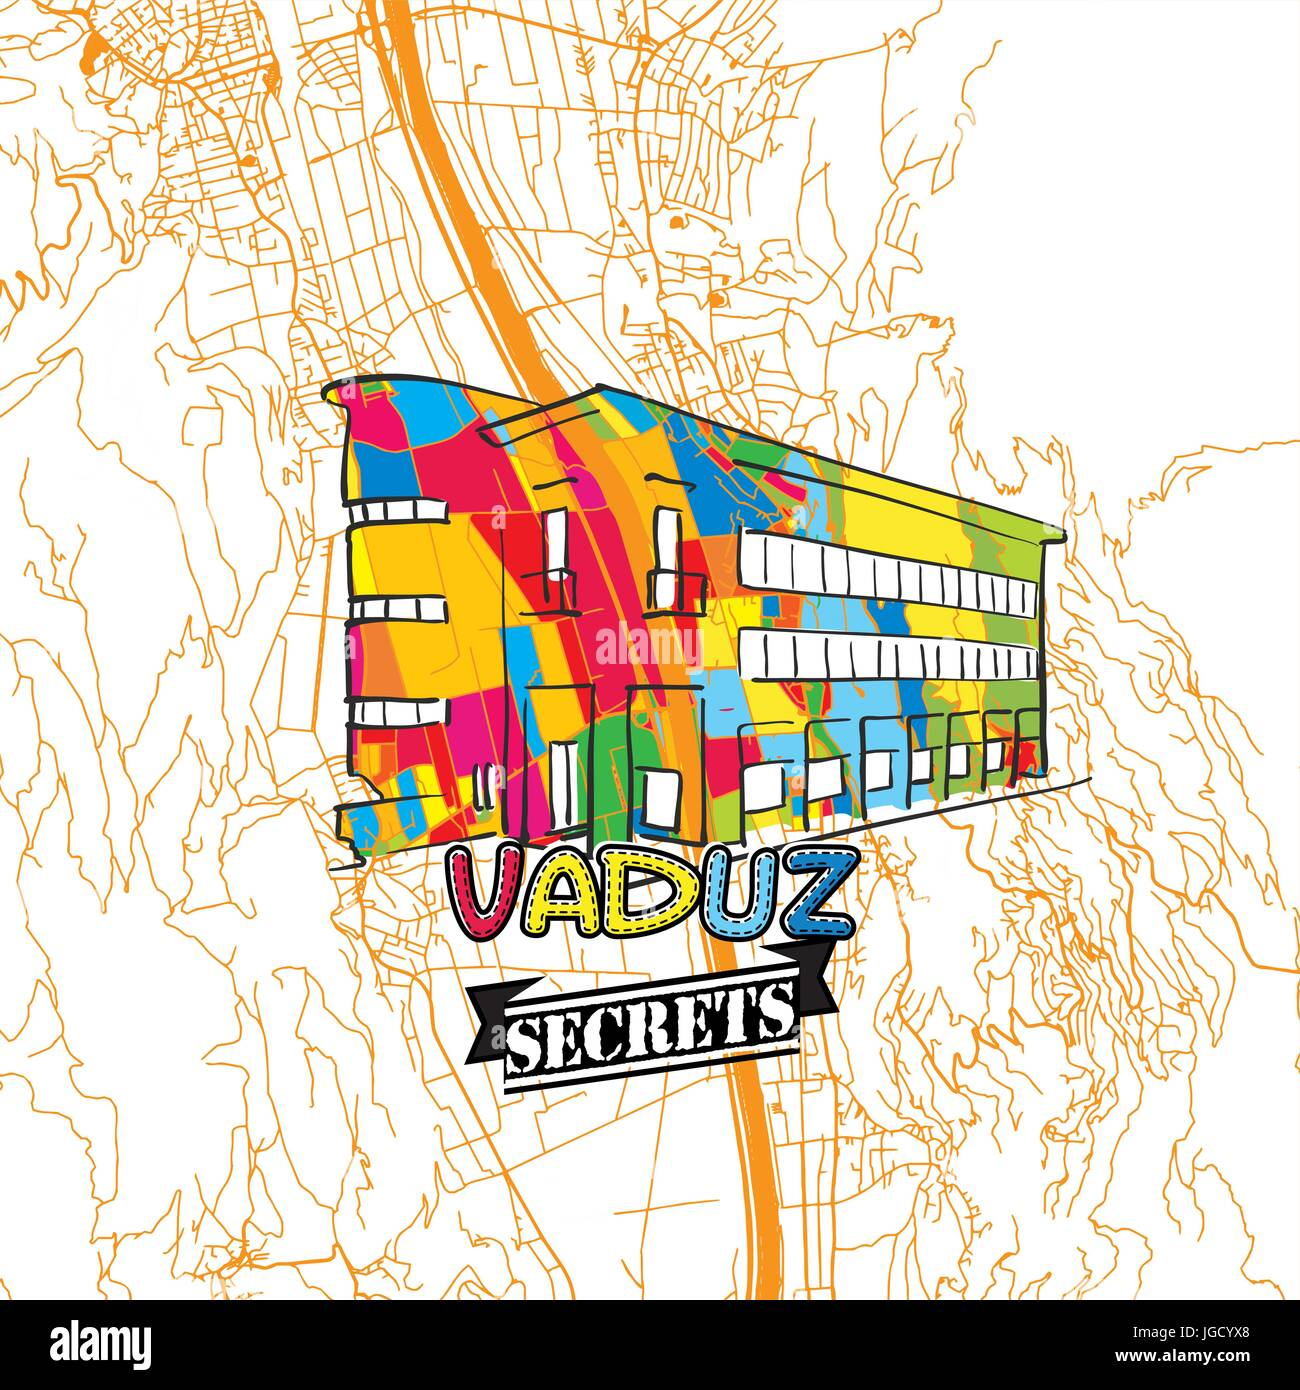 Vaduz Travel Secrets Art Map for mapping experts and travel guides. Handmade city logo, typo badge and hand drawn - Stock Image